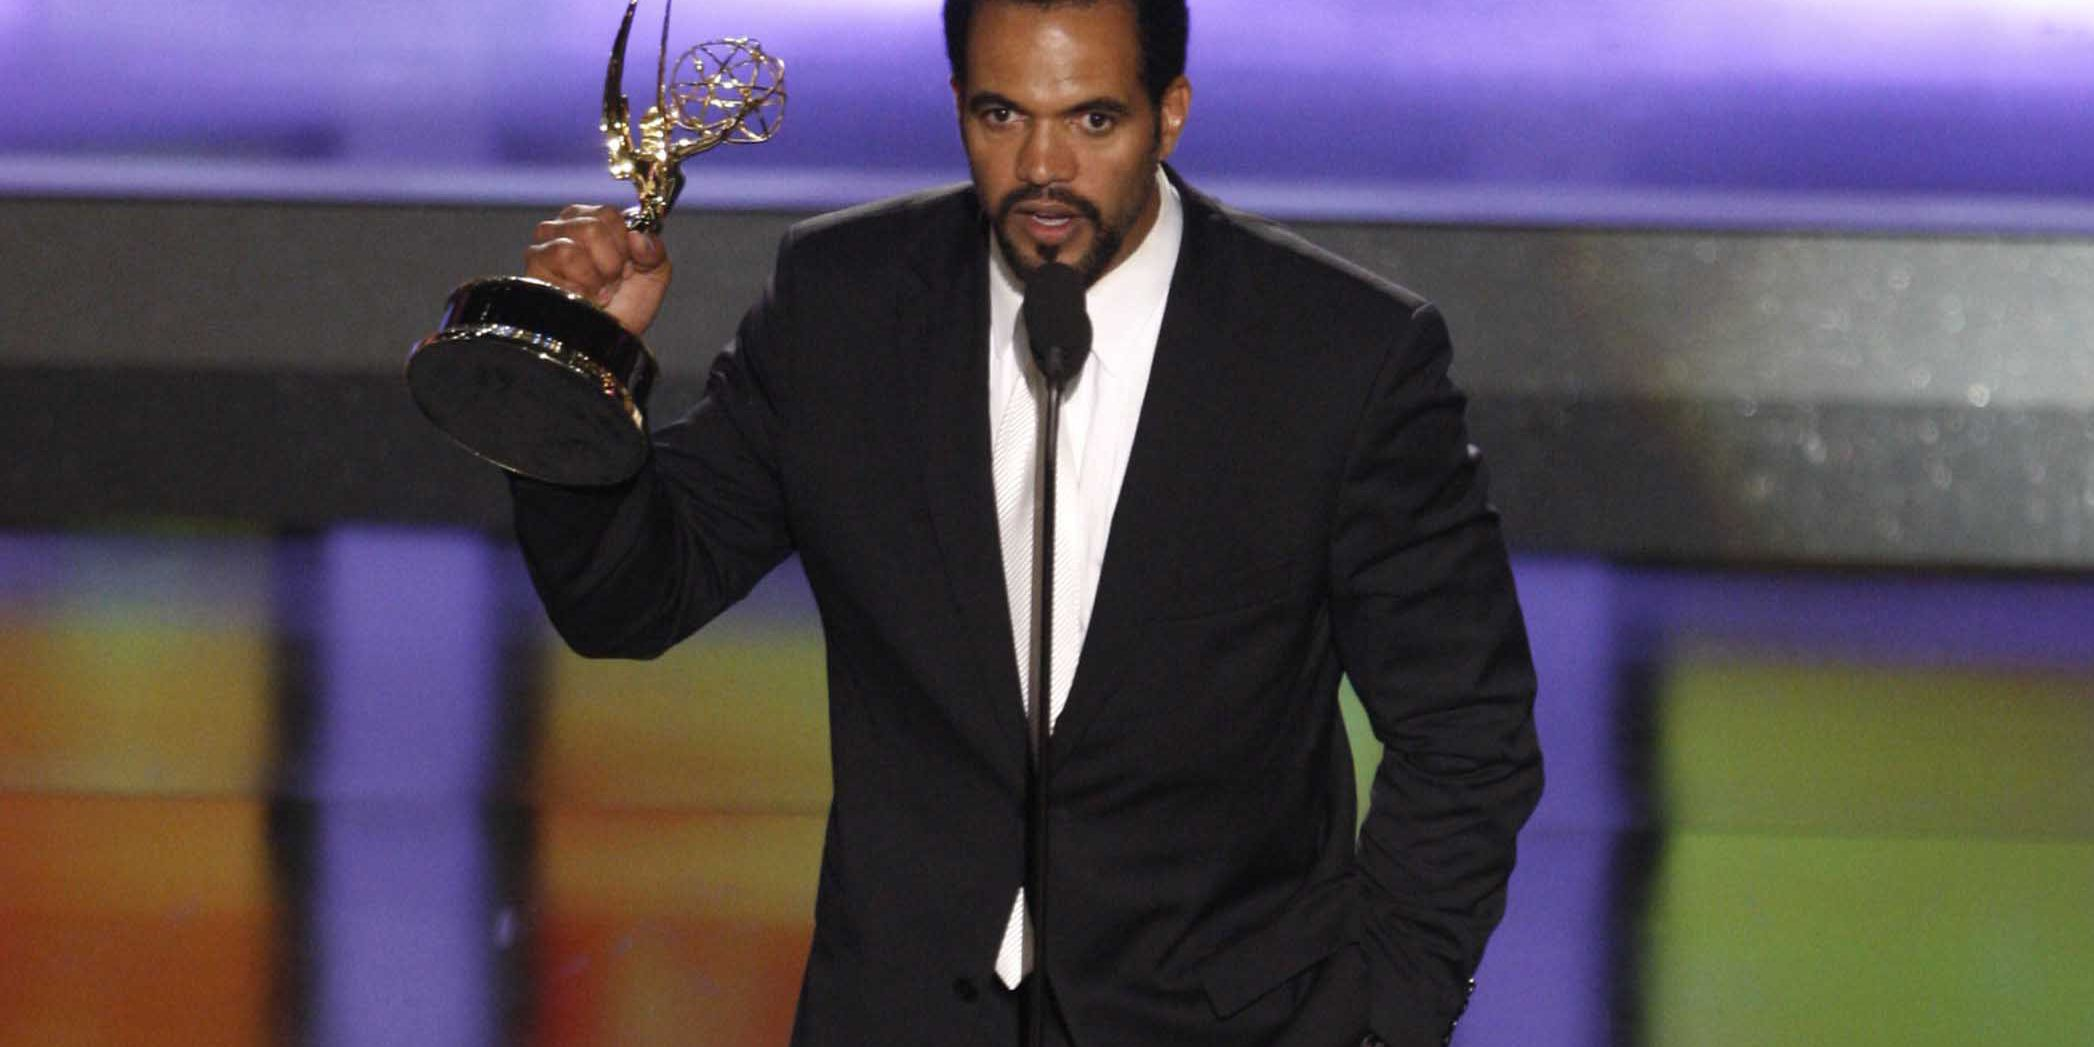 Actor Kristoff St. John died of heart disease and alcohol overdose, coroner says